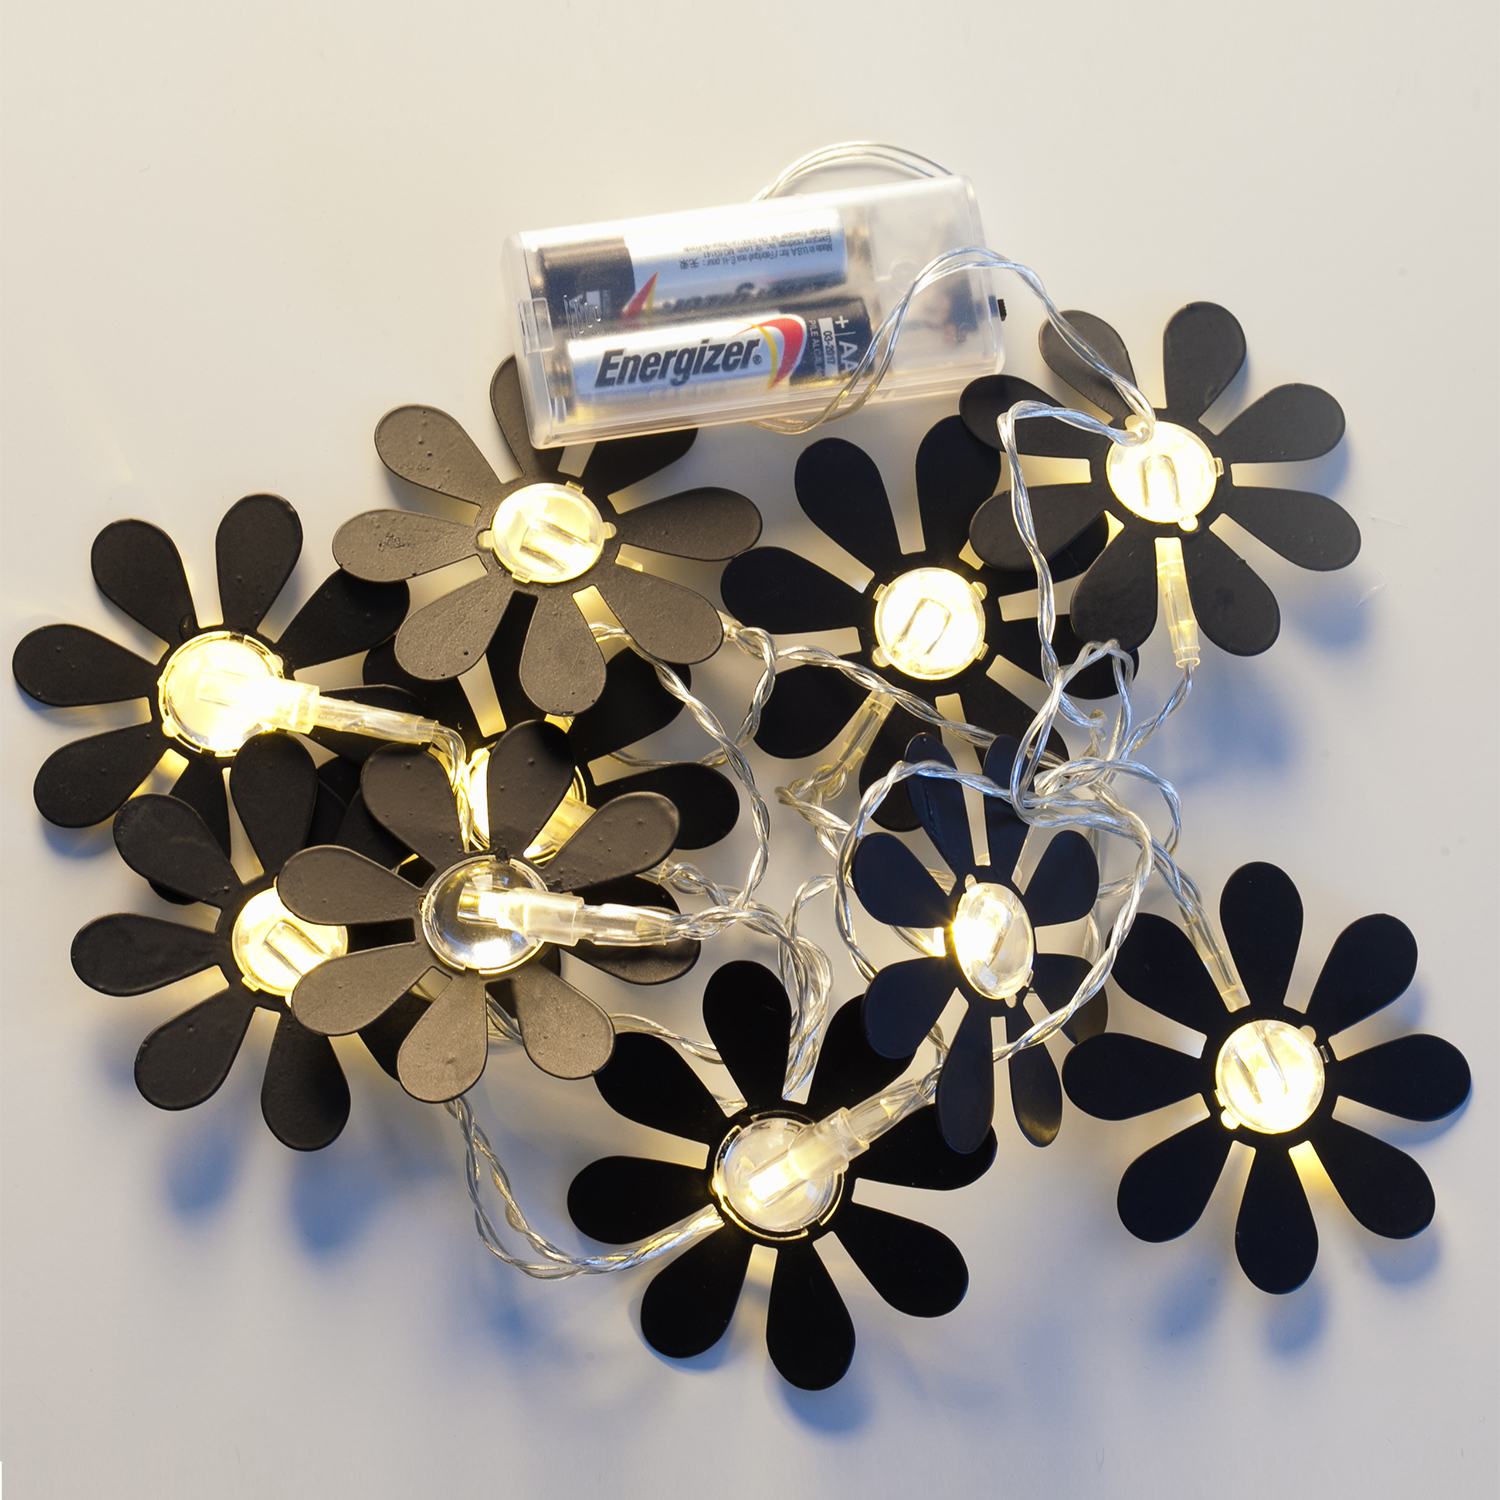 Decorative Battery Operated Wall Lights : Lights.com String Lights Decorative String Lights Black Daisy Battery Operated String ...